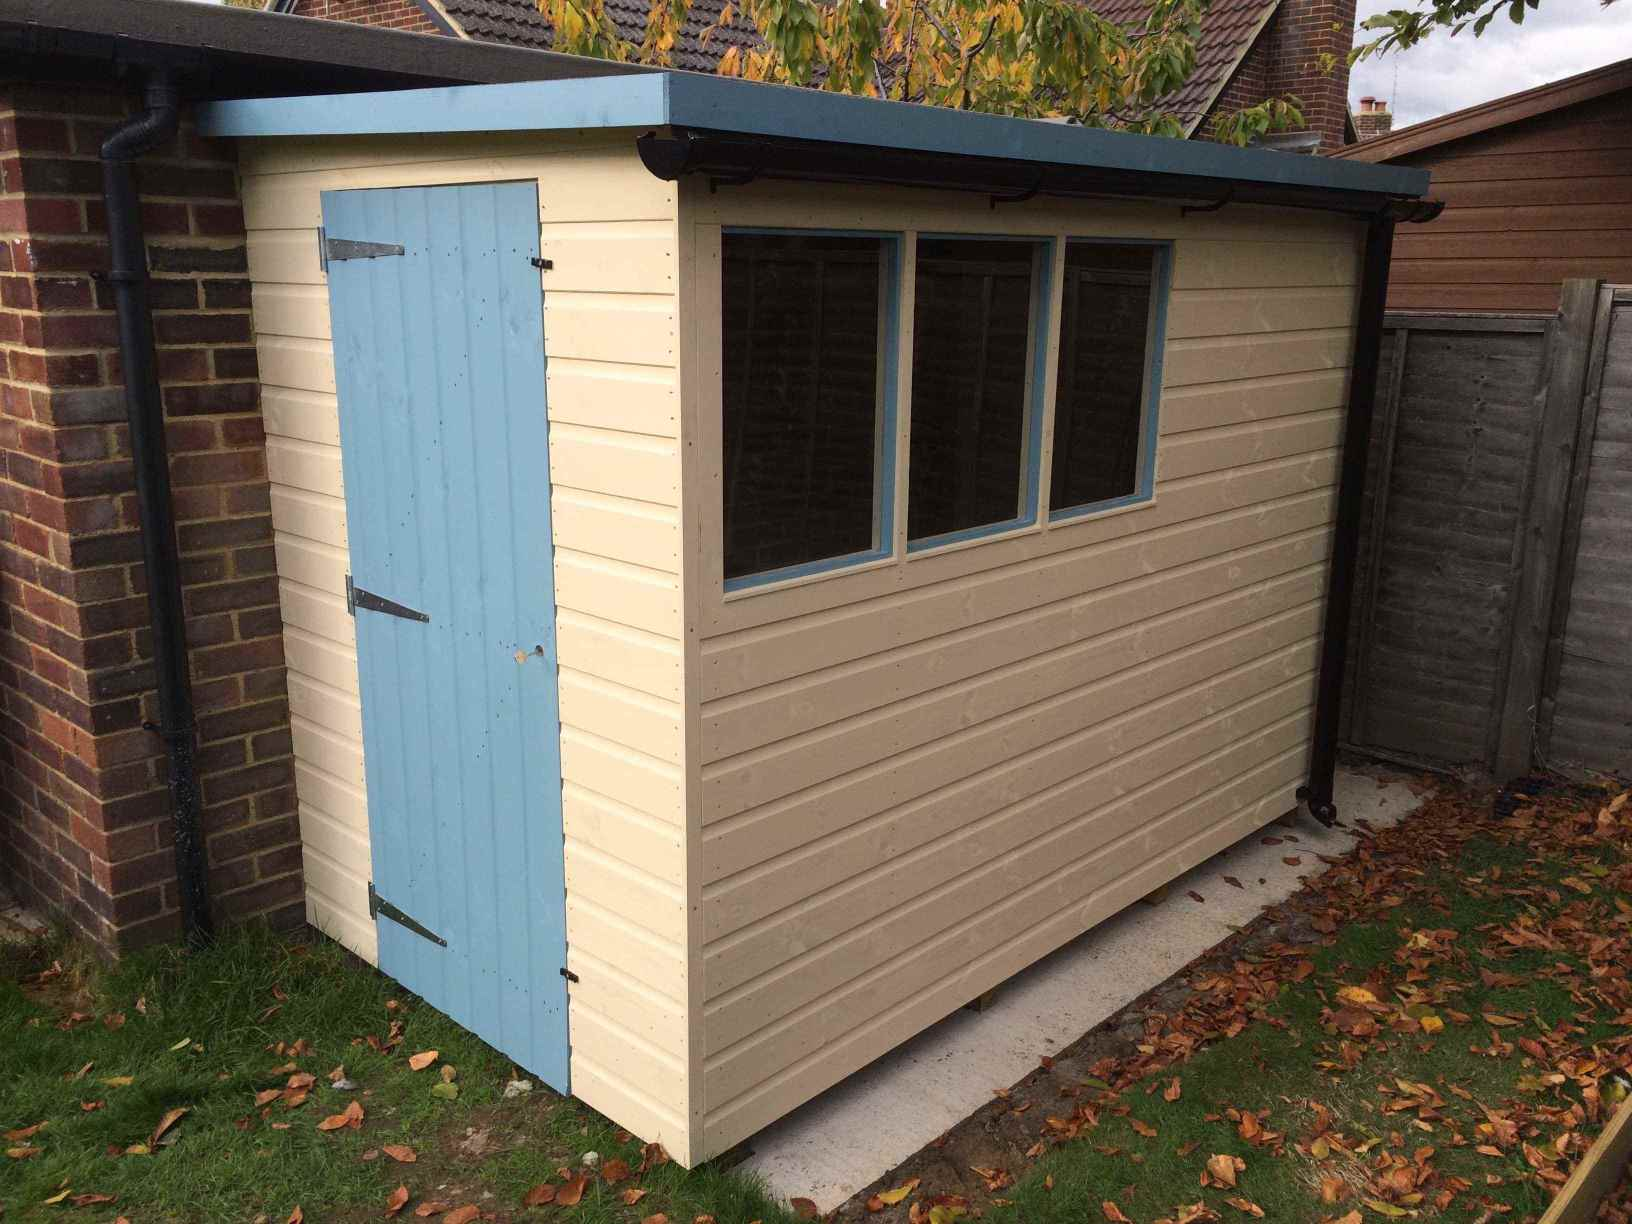 Garden Sheds 9 X 5 brilliant garden sheds 9 x 5 8 ft d wood storage shed for design